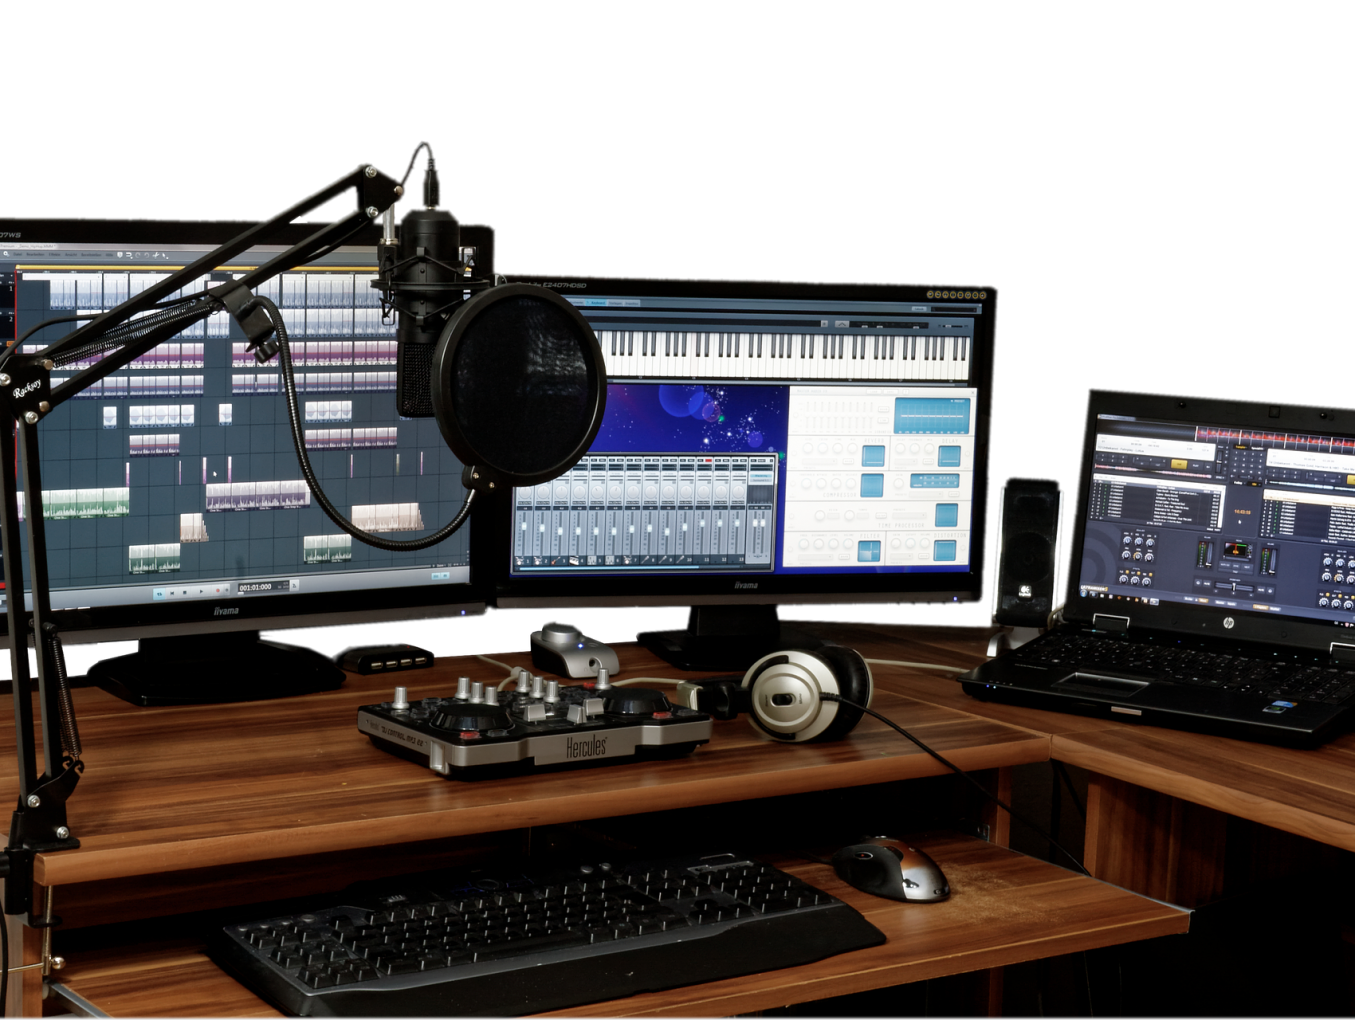 How To Set Up Your Home Studio For Under $400?